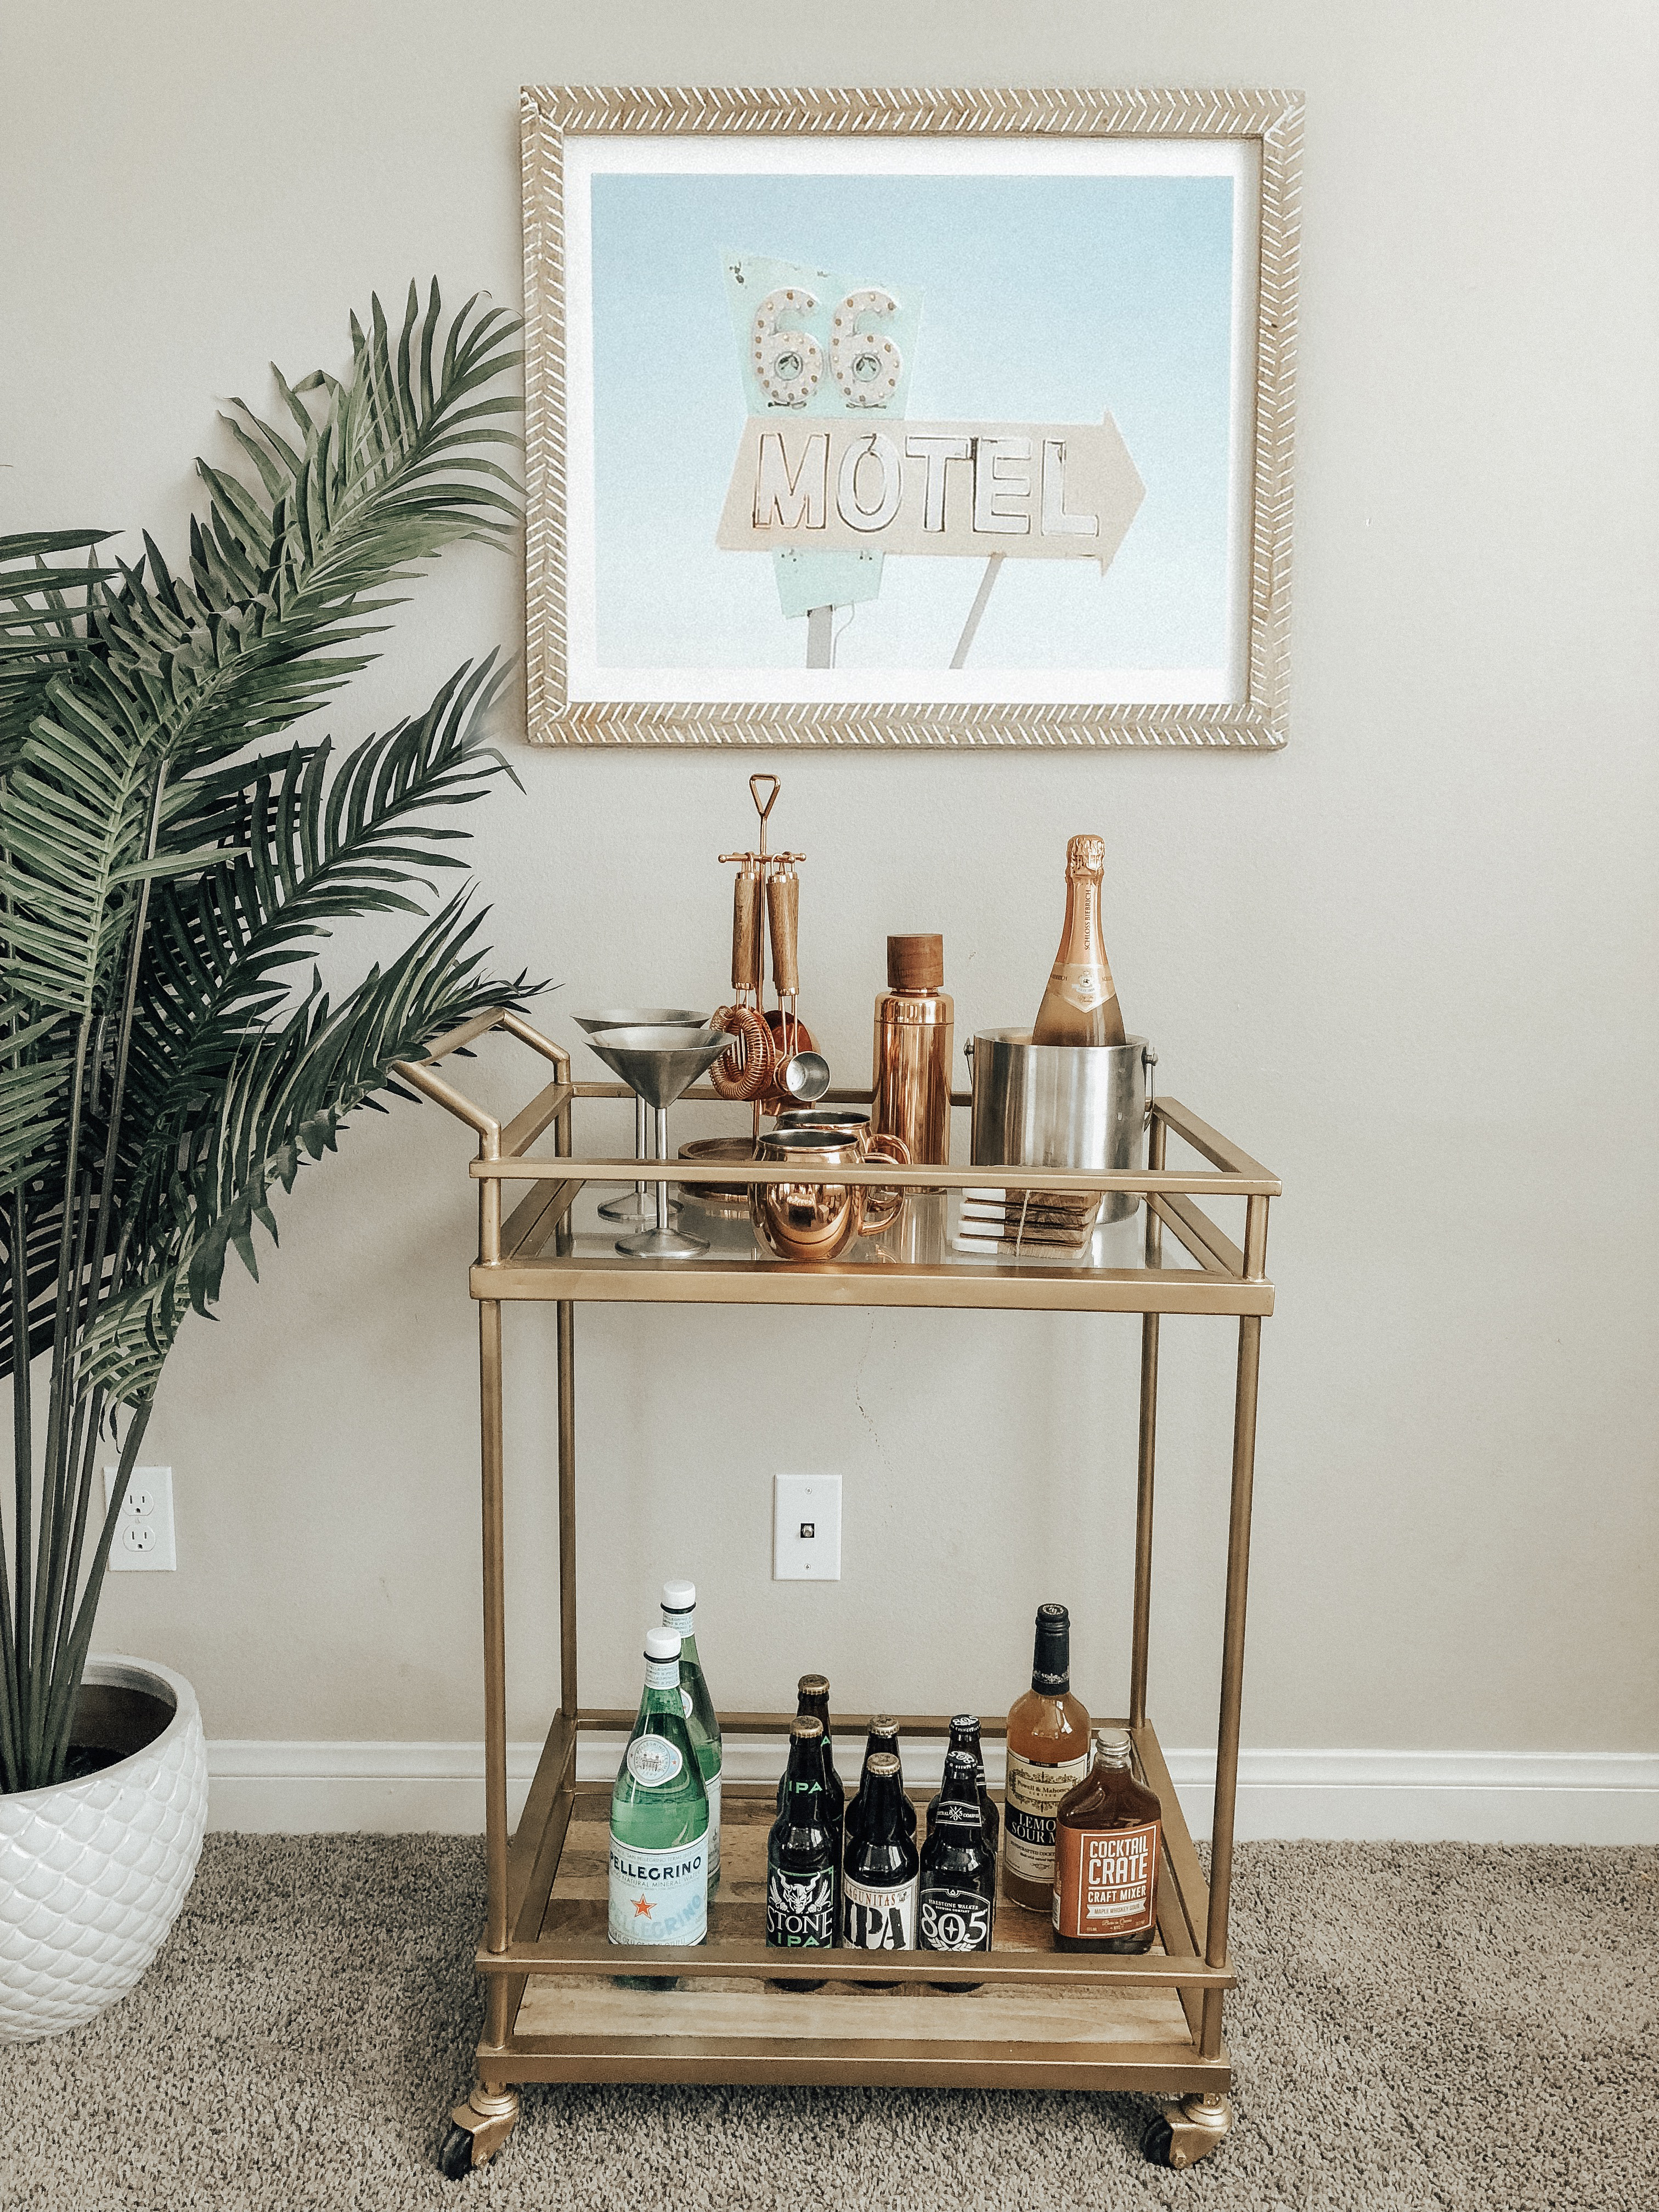 STYLING MY HOME WITH MINTED ART- Jaclyn De Leon Style + Minted art + stylng the home + home decor + wall art + home inspiration + guide to updating your art + art collector + retro style art + interior design + having fun with kids + bar cart